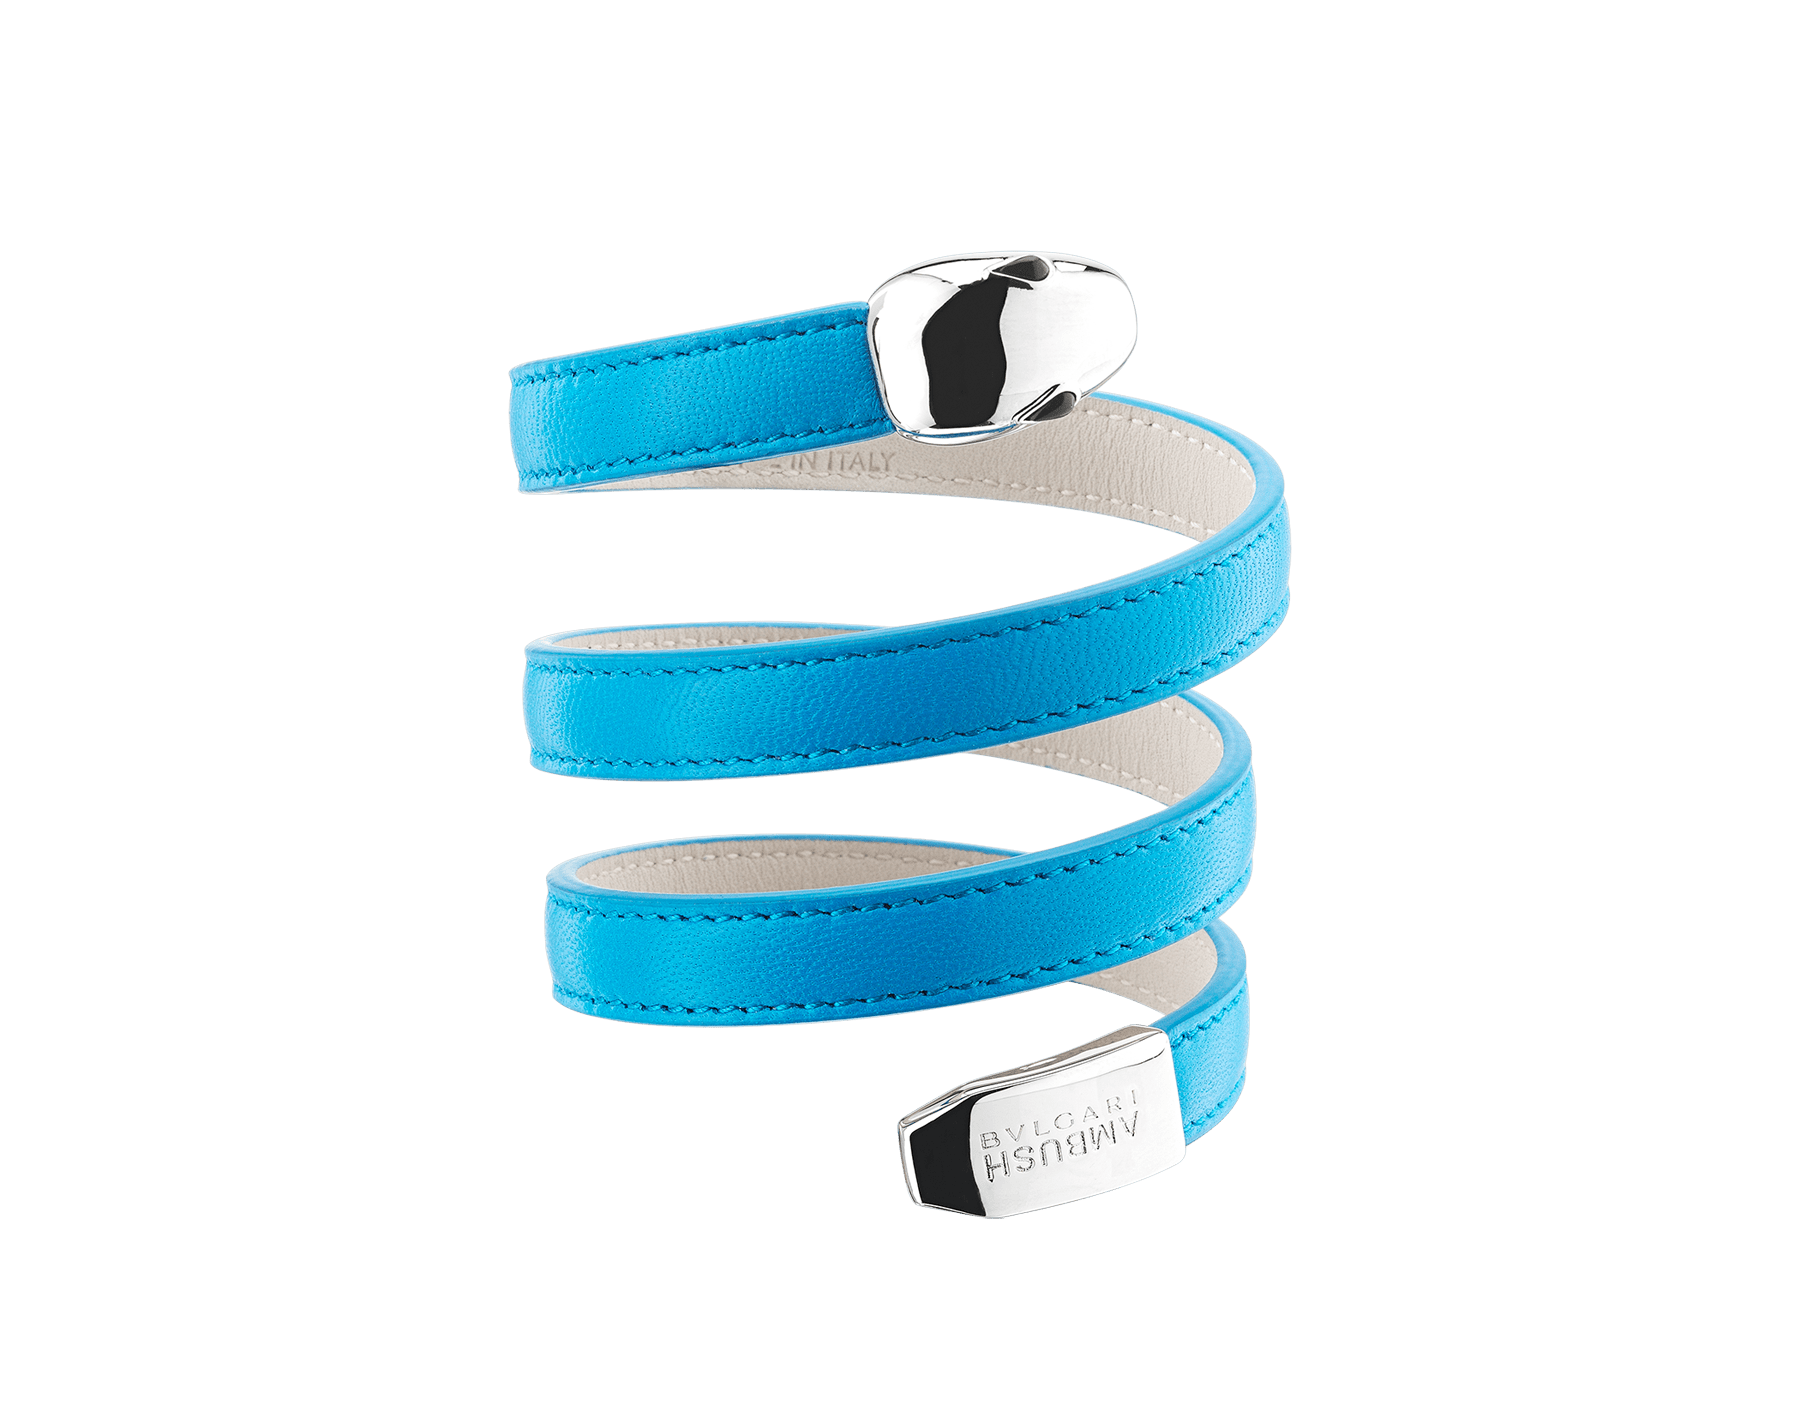 """Ambush x Bvlgari"" Serpenti multi-coiled bracelet in bright blue nappa leather. This model features palladium plated brass iconic snakehead décor, finished with black onyx eyes, and snake tail with ""BVLGARI AMBUSH"" logo. Limited edition. 290363 image 1"